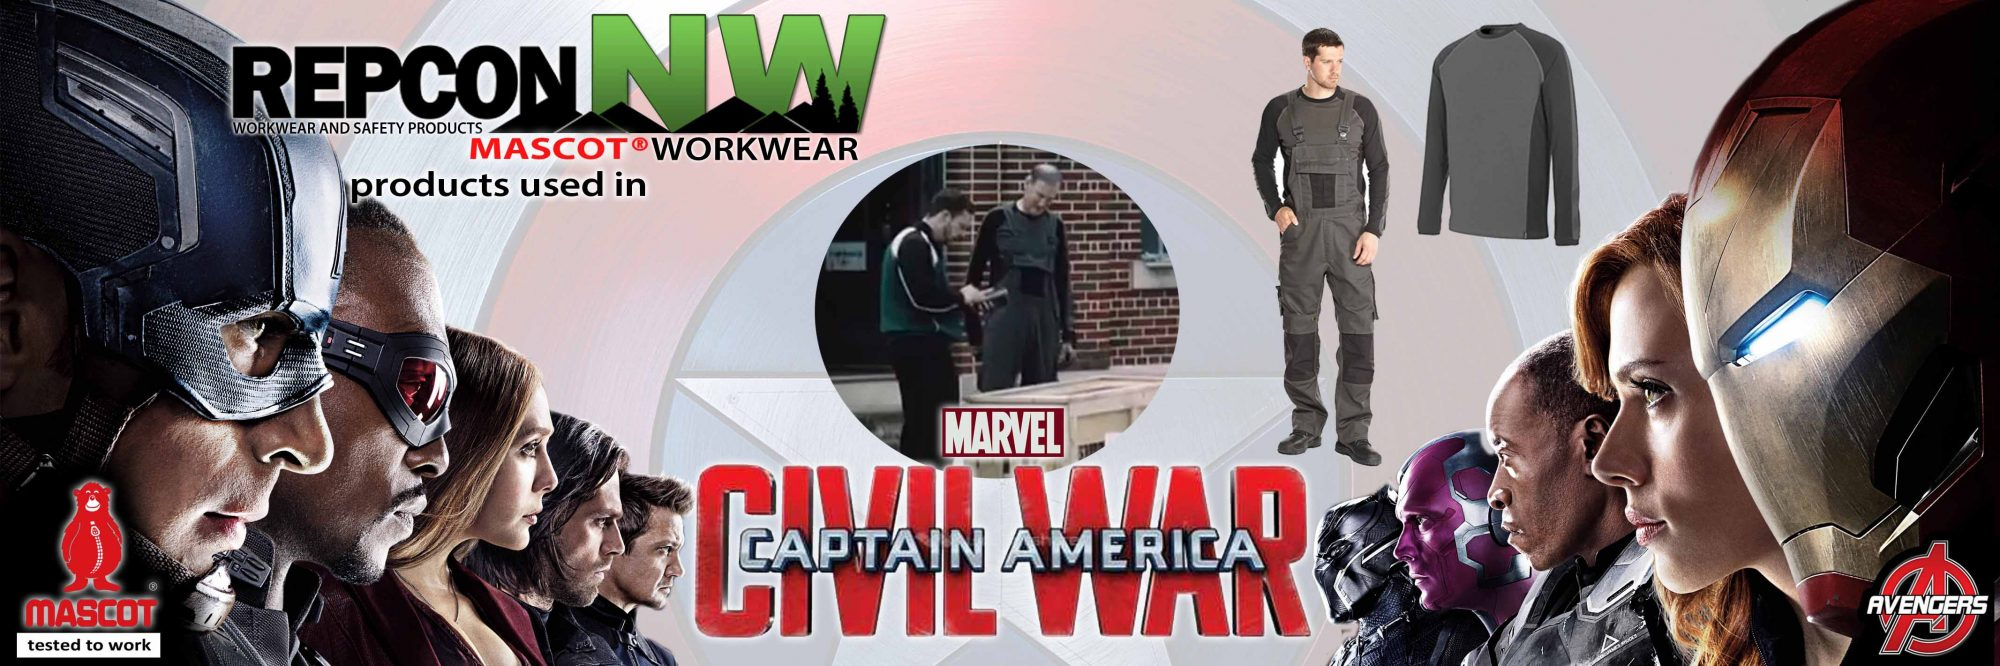 RECPON NW MASCOT Workwear in Marvel Civil War Banner